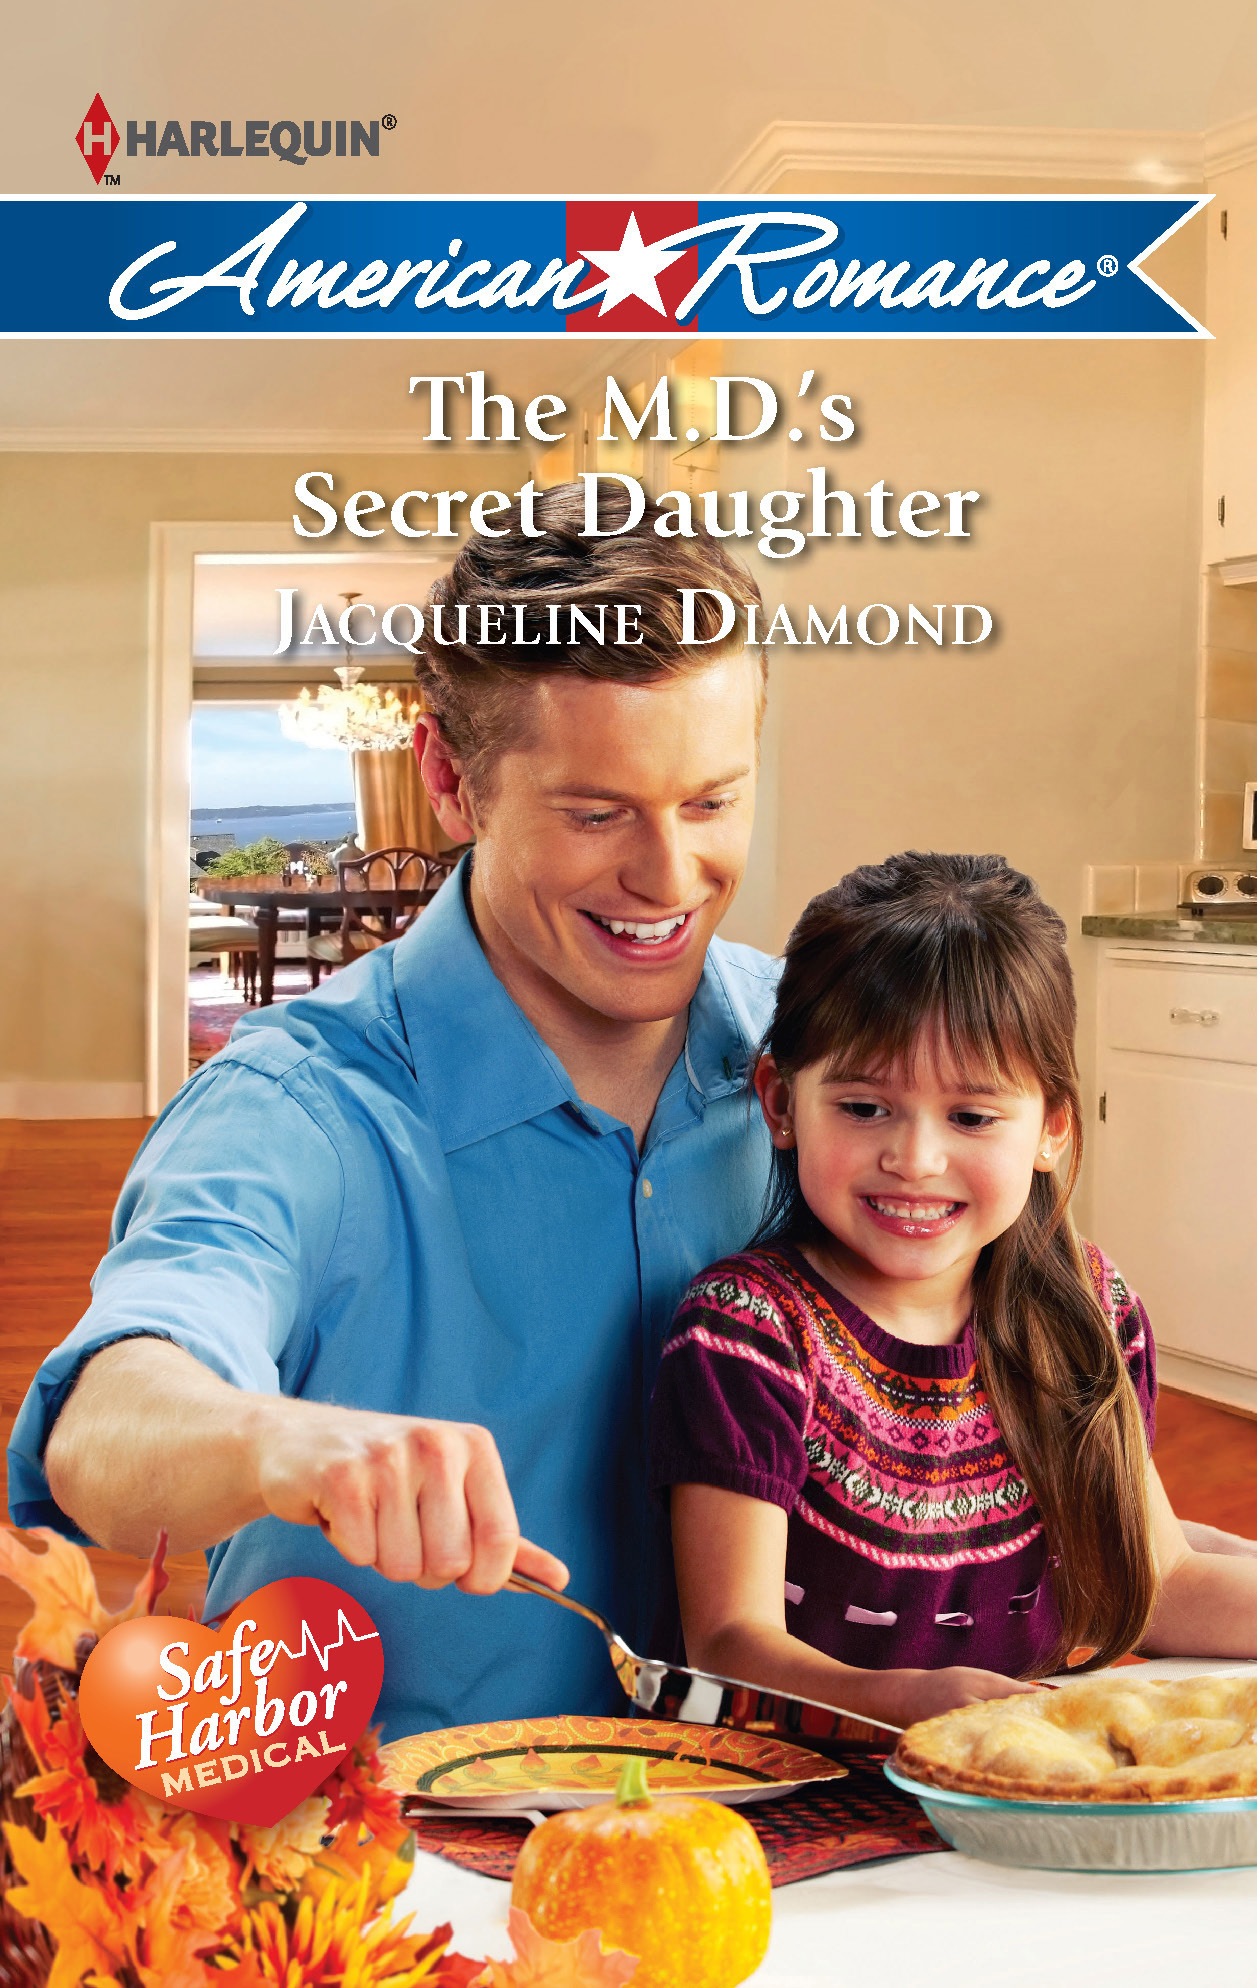 The M.D.'s Secret Daughter By: Jacqueline Diamond